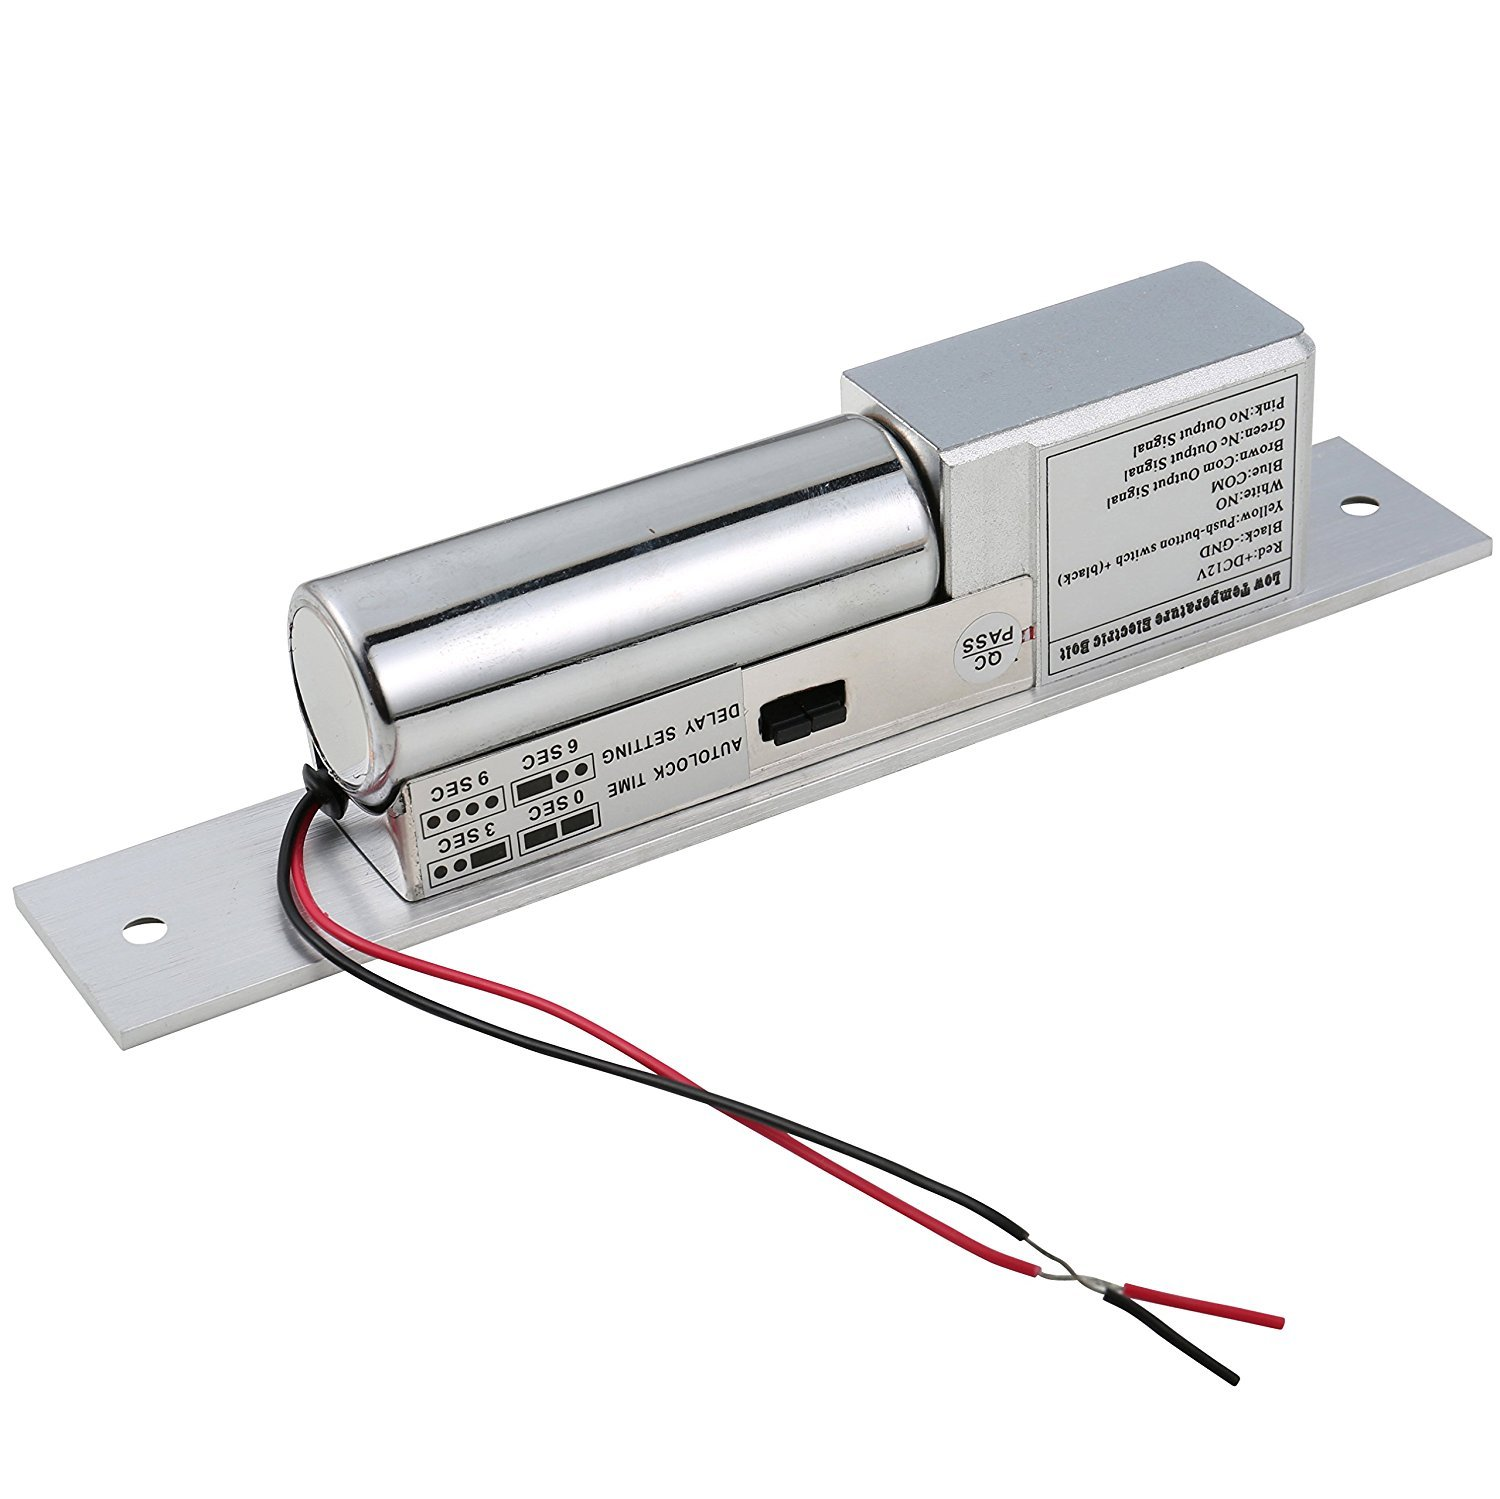 UHPPOTE Low Temperature Electric Bolt Lock Fail Safe Mode DC12V For Access Control Wood Metal Door